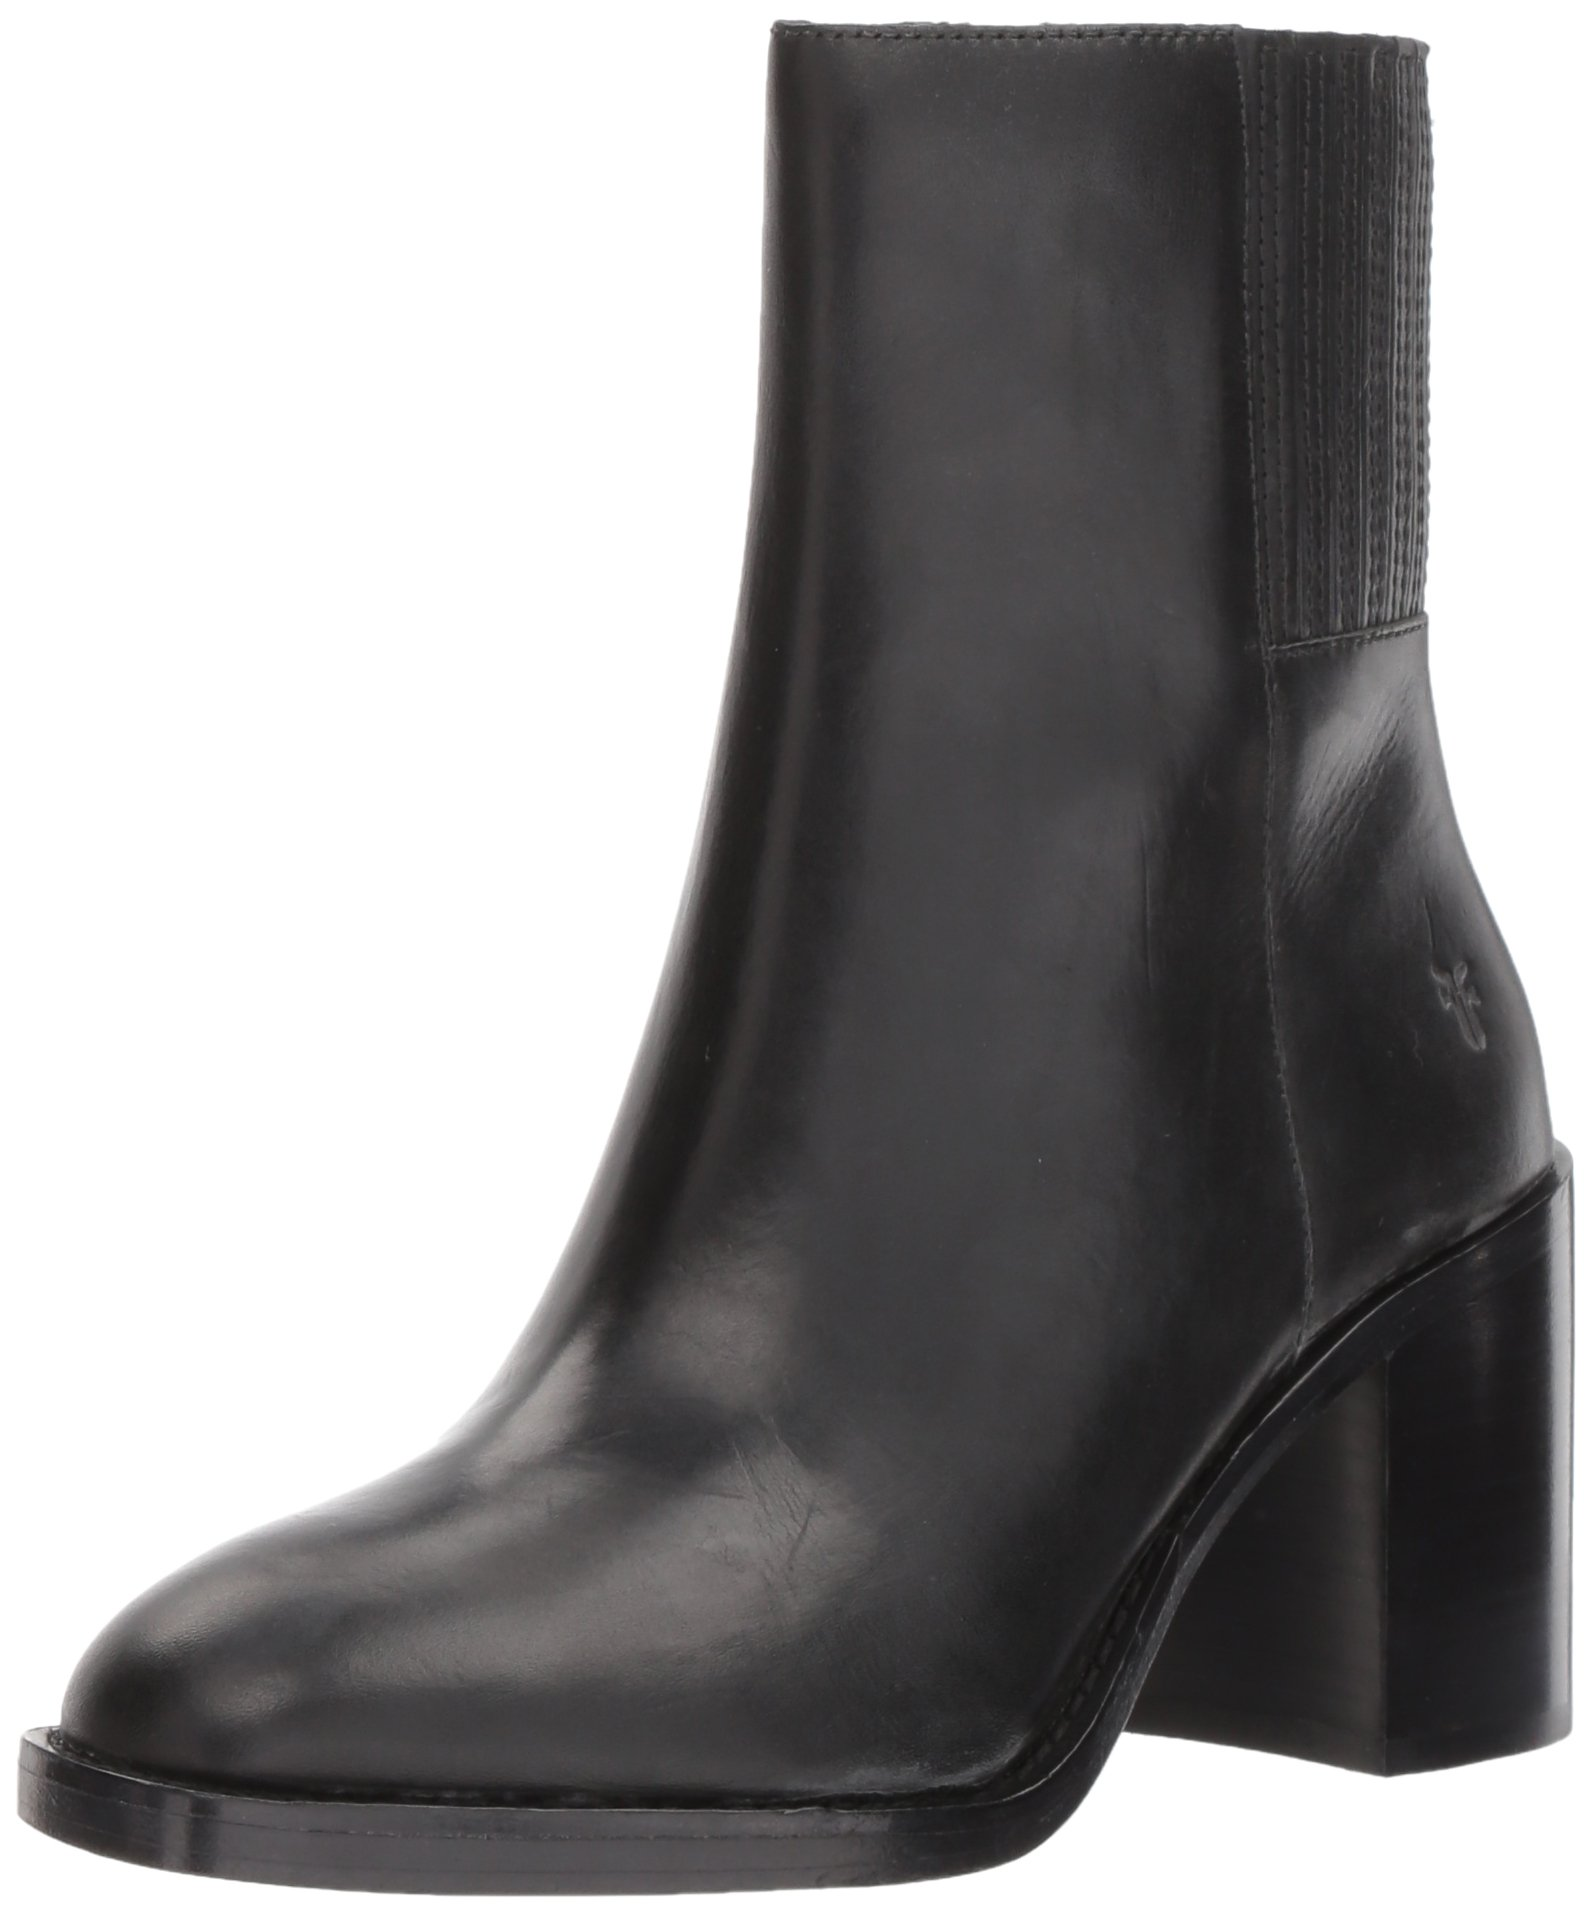 FRYE Women's Pia Short Chelsea Boot, Black, 7 M US